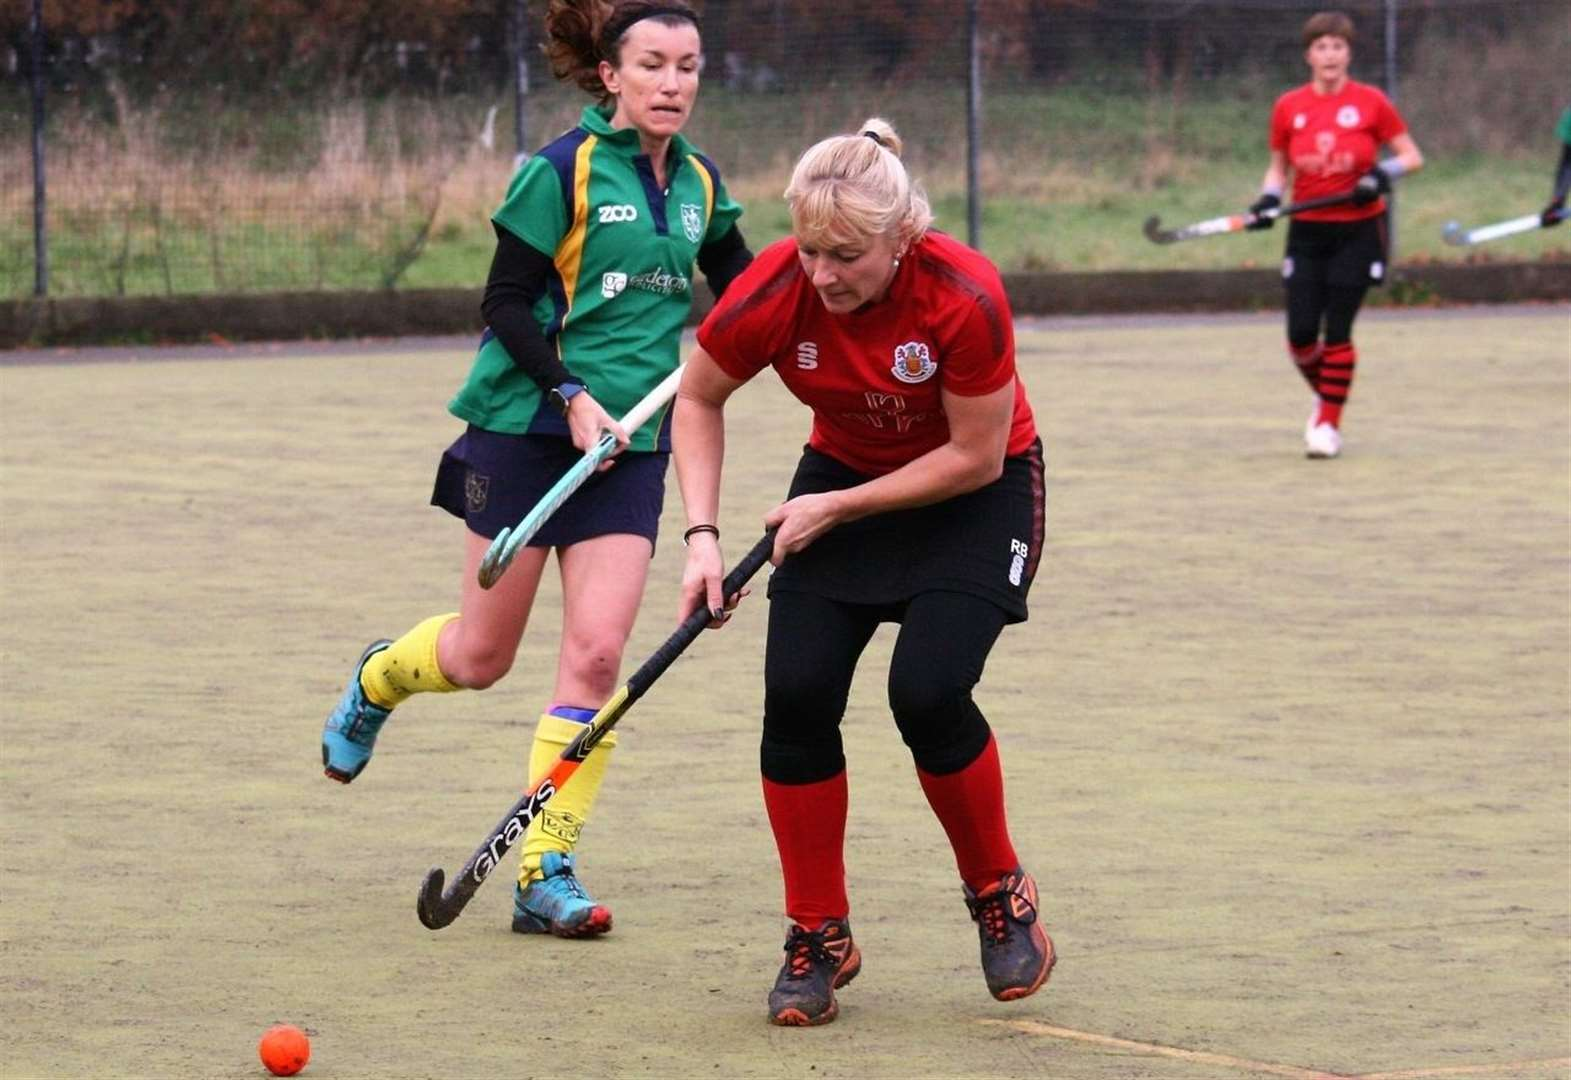 Ladies' hockey: opponents Pegg-ed back by hat-trick